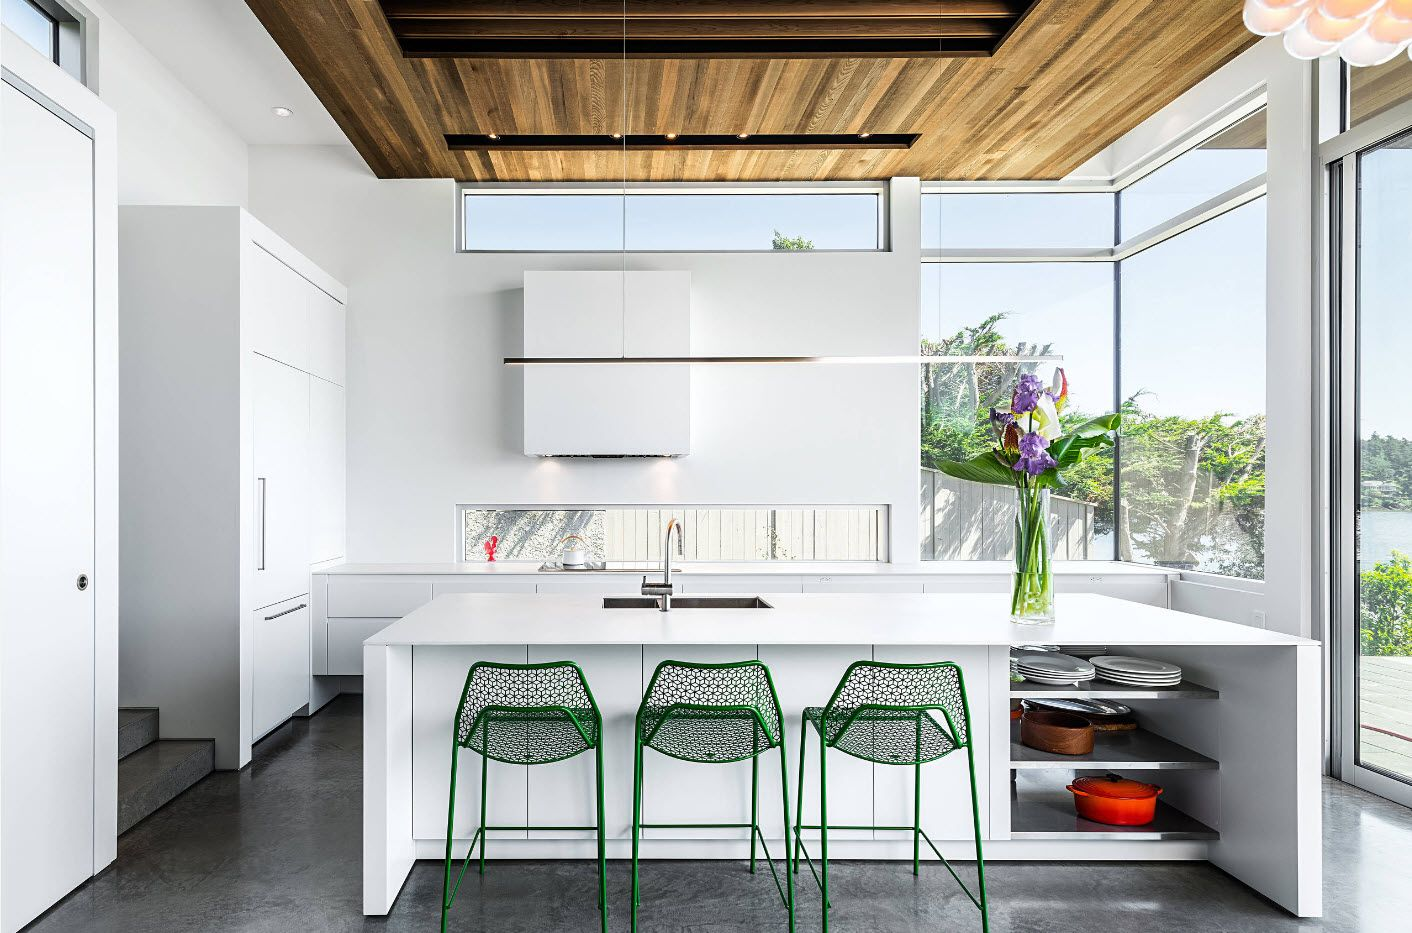 Nice wooden ceiling in the open layout of the kitchen with panoramic perimeter windows